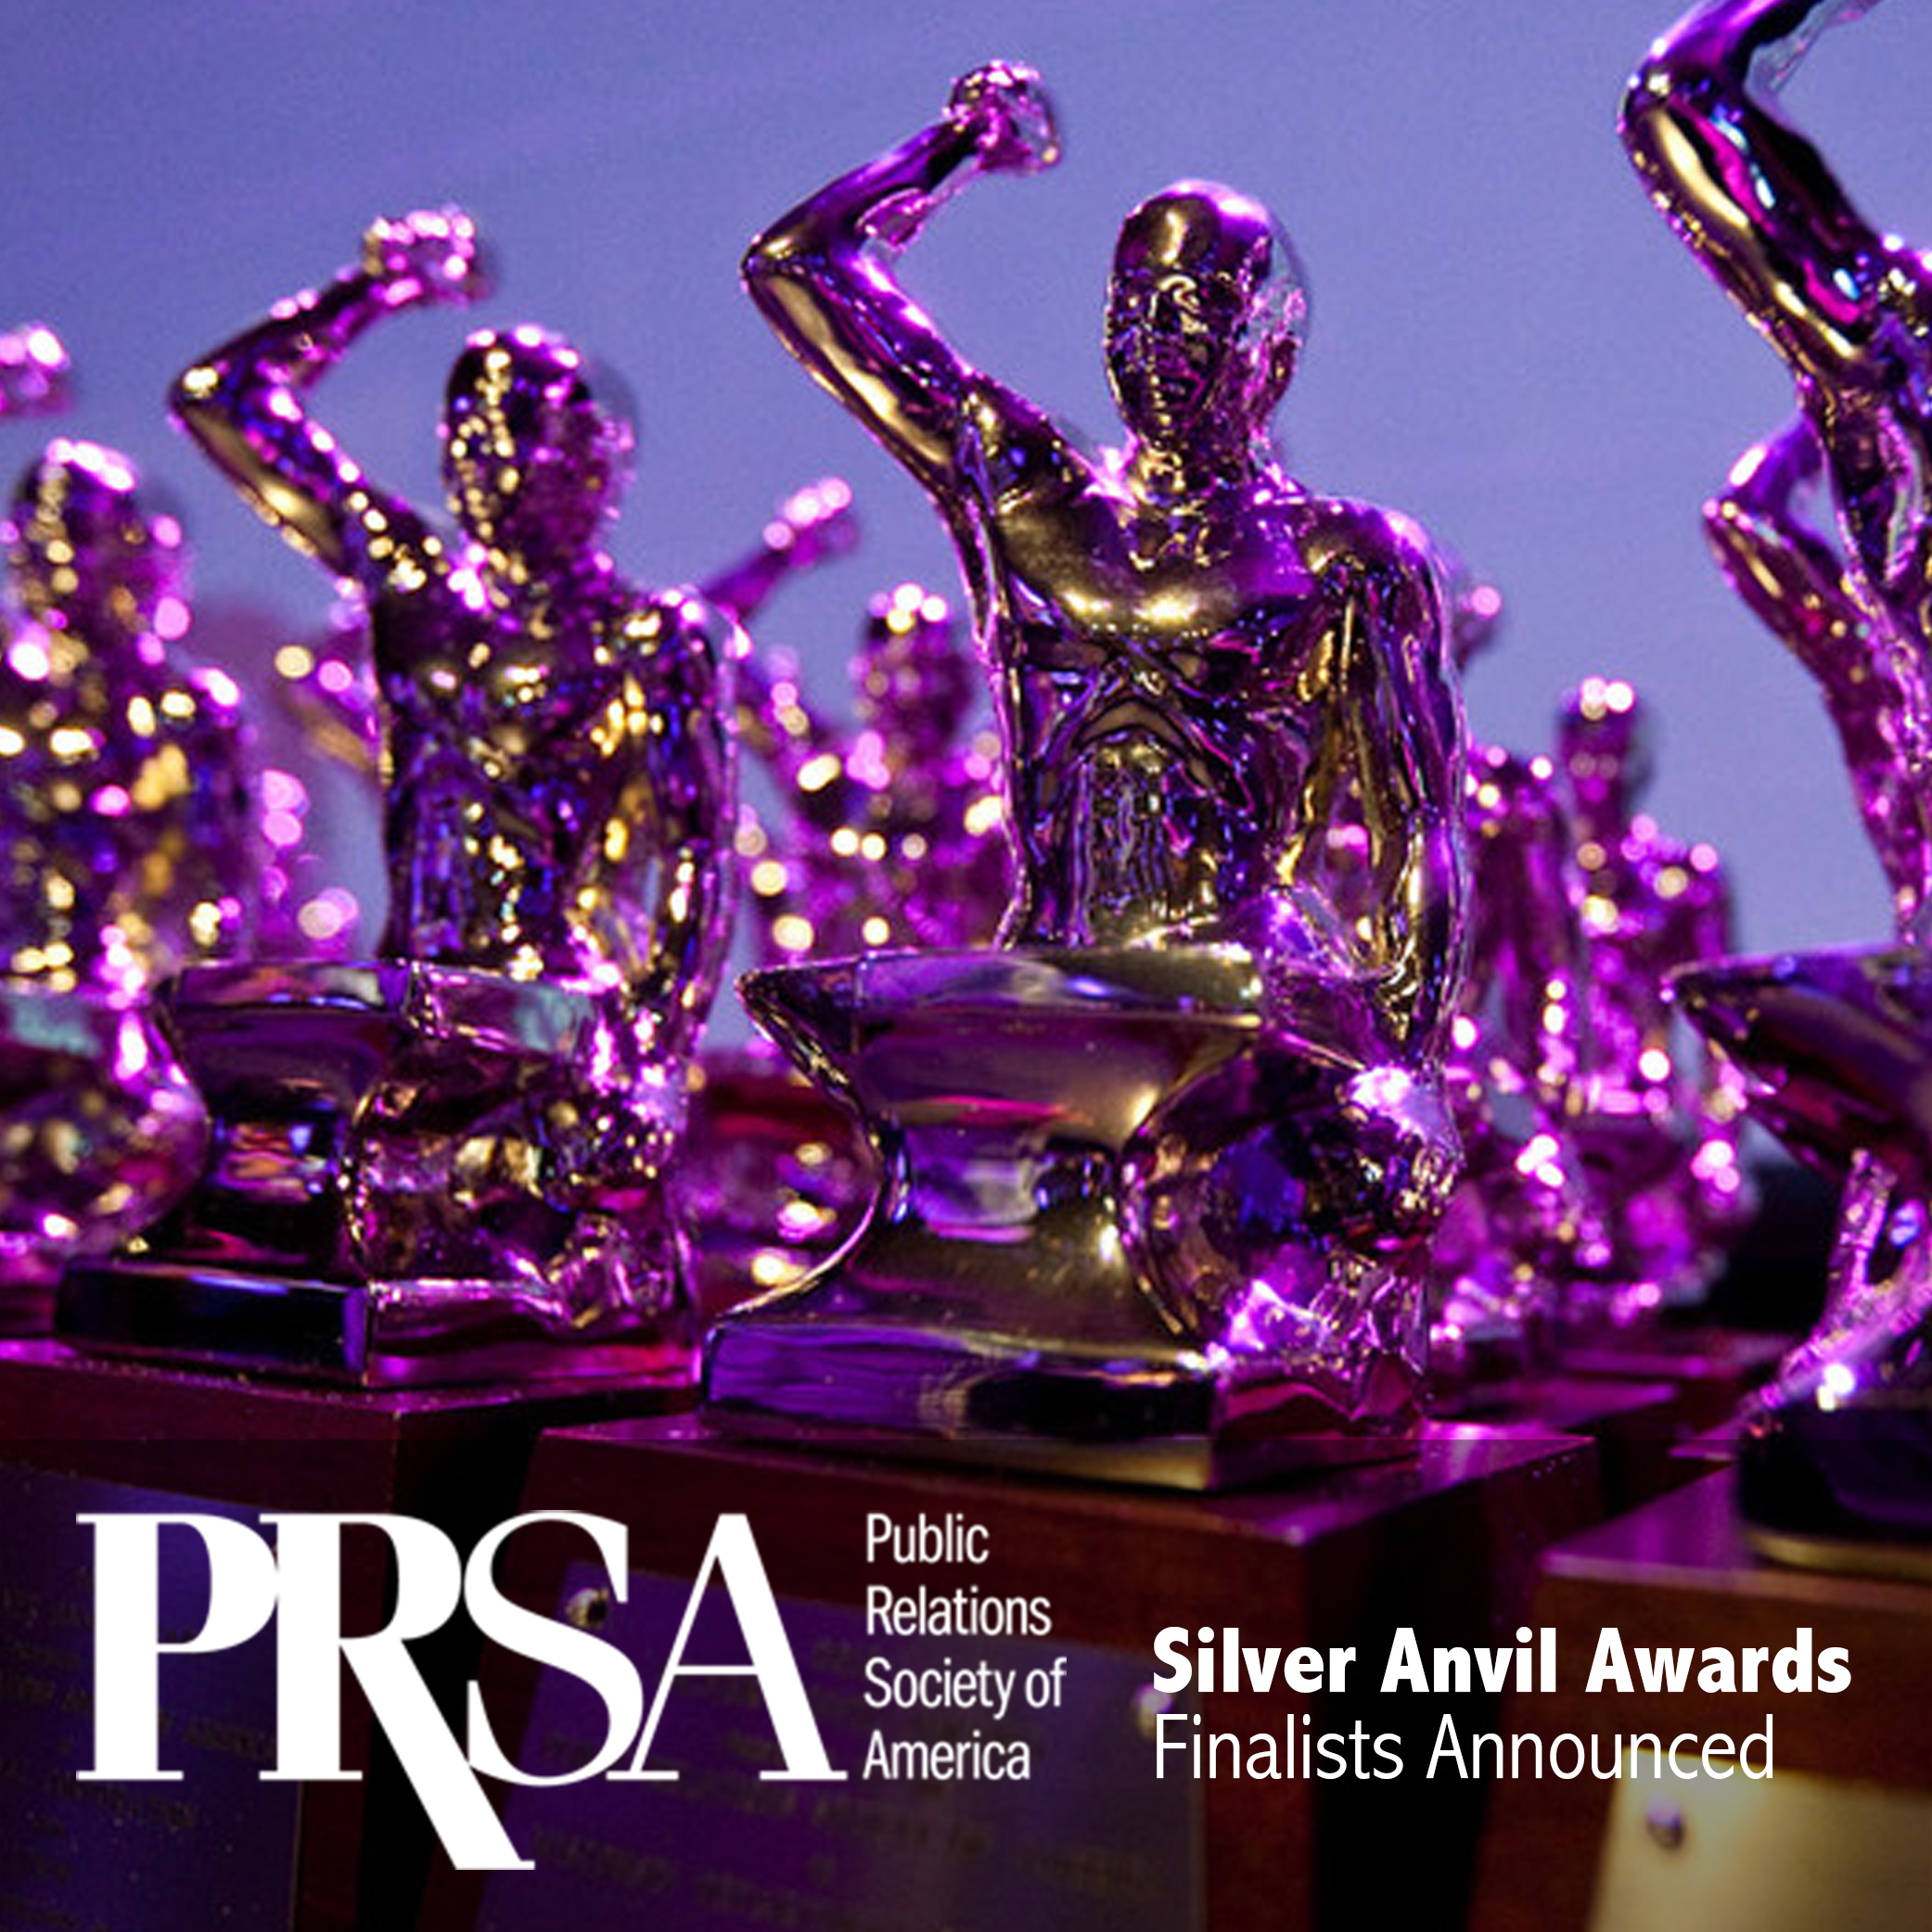 PRSA Silver Anvil Awards Finalists